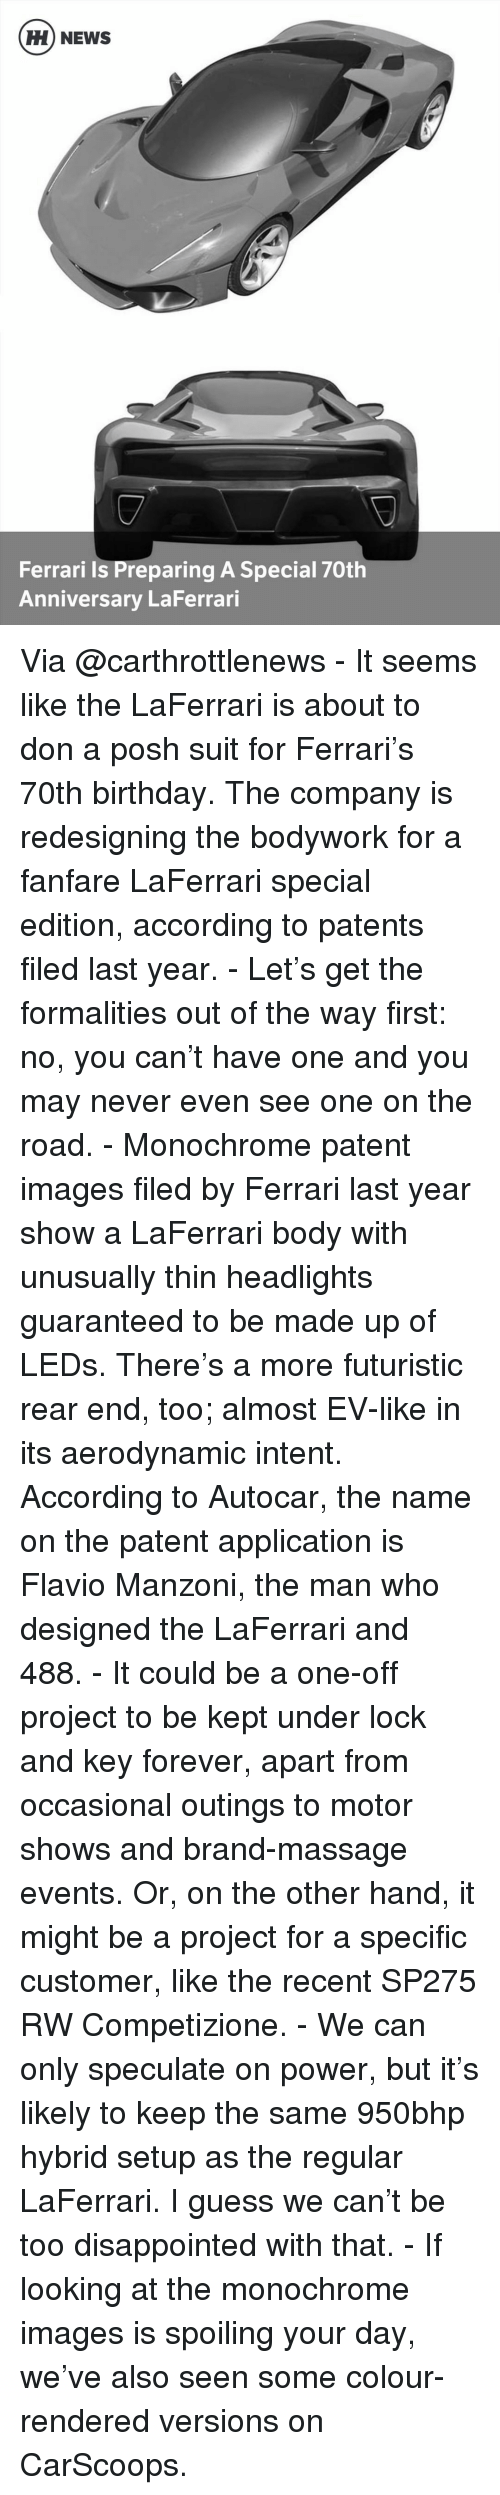 foreverly: HH NEWS  Ferrari is Preparing A Special 70th  Anniversary LaFerrari Via @carthrottlenews - It seems like the LaFerrari is about to don a posh suit for Ferrari's 70th birthday. The company is redesigning the bodywork for a fanfare LaFerrari special edition, according to patents filed last year. - Let's get the formalities out of the way first: no, you can't have one and you may never even see one on the road. - Monochrome patent images filed by Ferrari last year show a LaFerrari body with unusually thin headlights guaranteed to be made up of LEDs. There's a more futuristic rear end, too; almost EV-like in its aerodynamic intent. According to Autocar, the name on the patent application is Flavio Manzoni, the man who designed the LaFerrari and 488. - It could be a one-off project to be kept under lock and key forever, apart from occasional outings to motor shows and brand-massage events. Or, on the other hand, it might be a project for a specific customer, like the recent SP275 RW Competizione. - We can only speculate on power, but it's likely to keep the same 950bhp hybrid setup as the regular LaFerrari. I guess we can't be too disappointed with that. - If looking at the monochrome images is spoiling your day, we've also seen some colour-rendered versions on CarScoops.